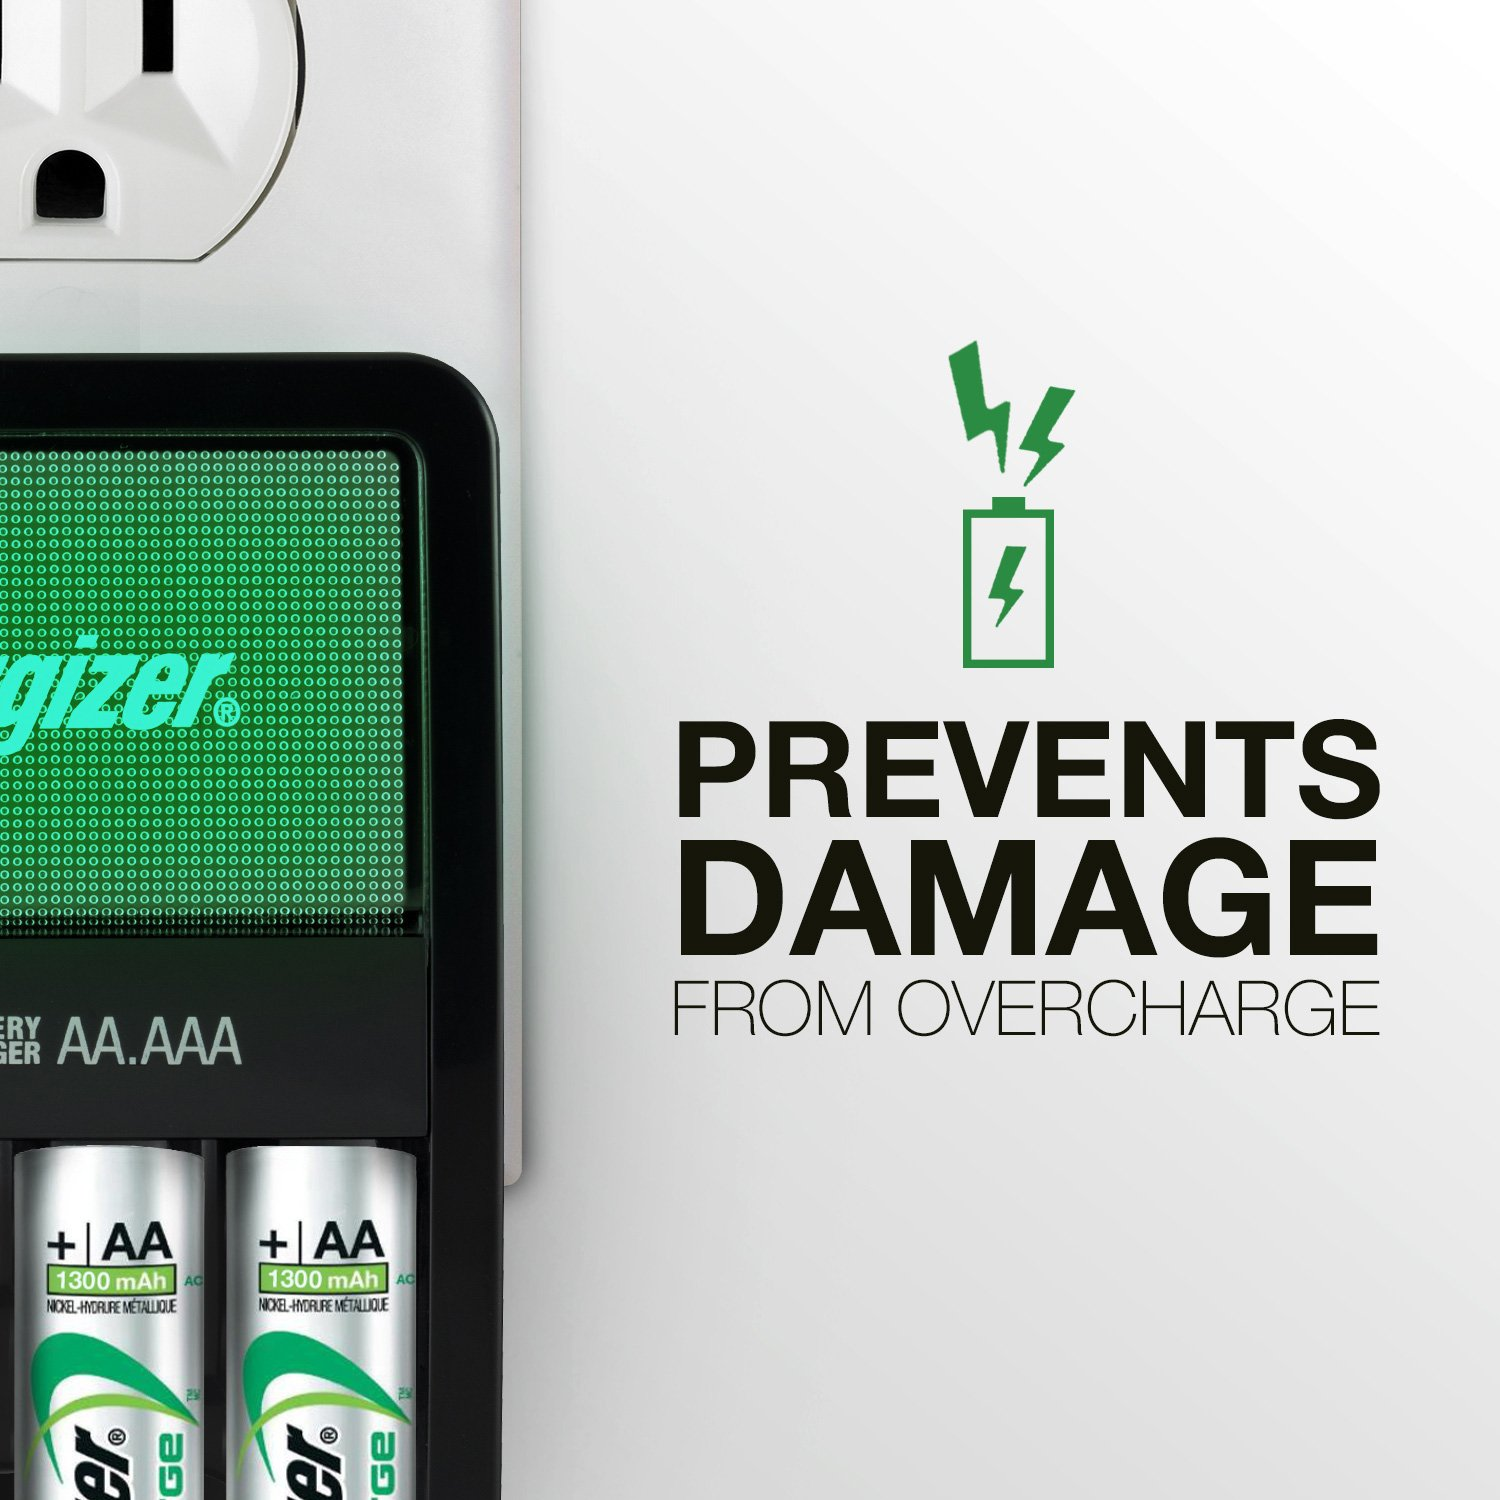 Energizer AA/AAA Battery Charger with 4 AA Batteries Accessories ...